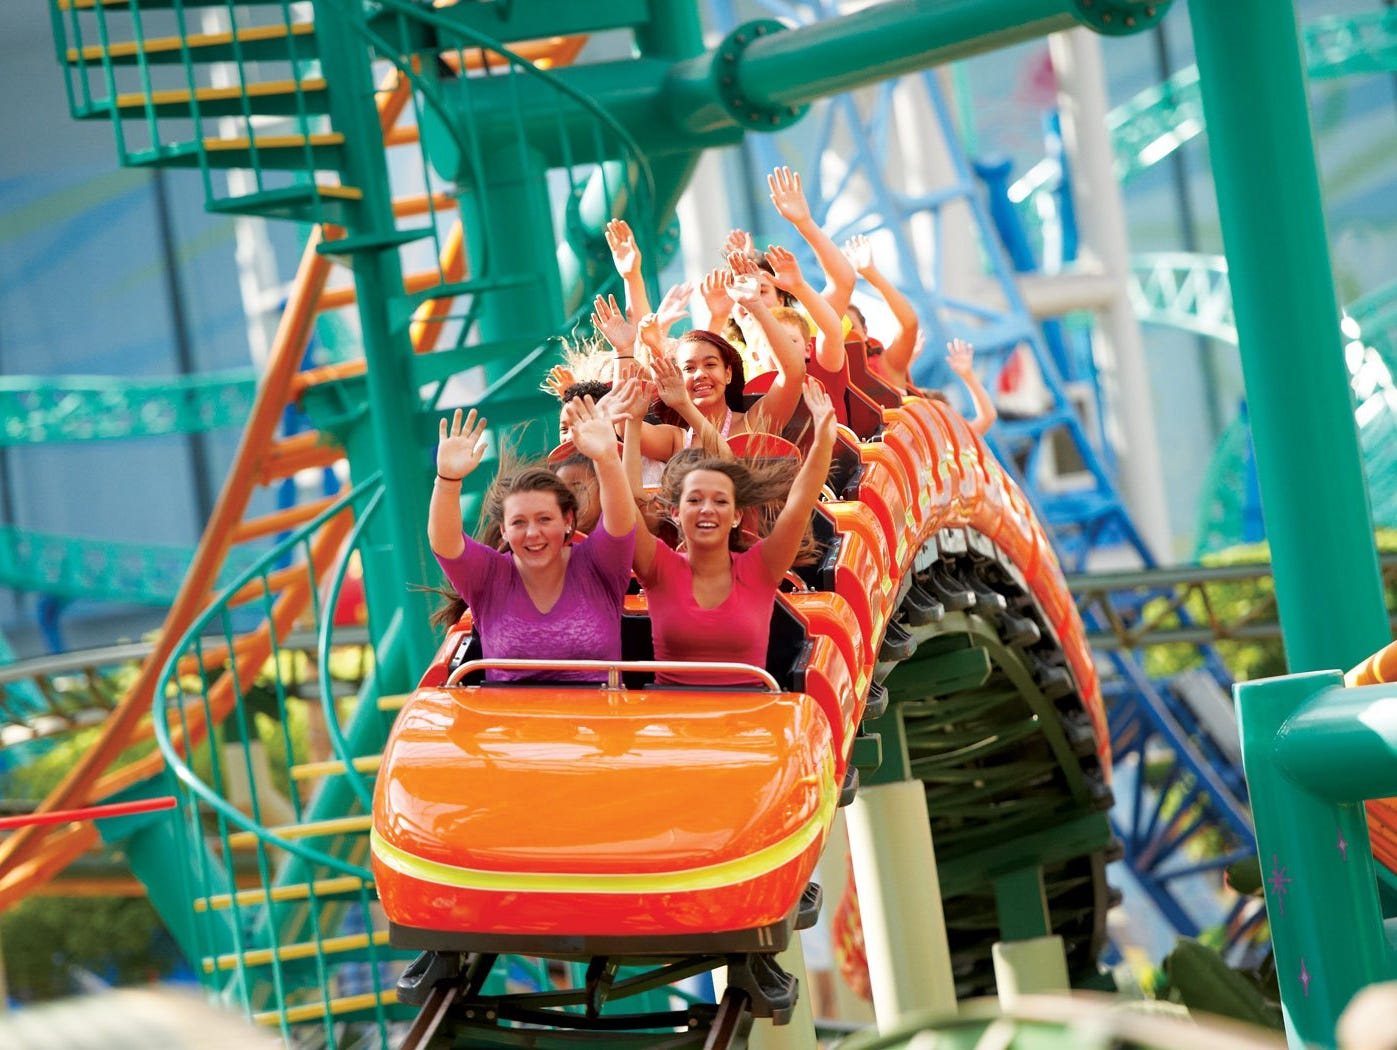 Insider savings at America's largest indoor amusement park.